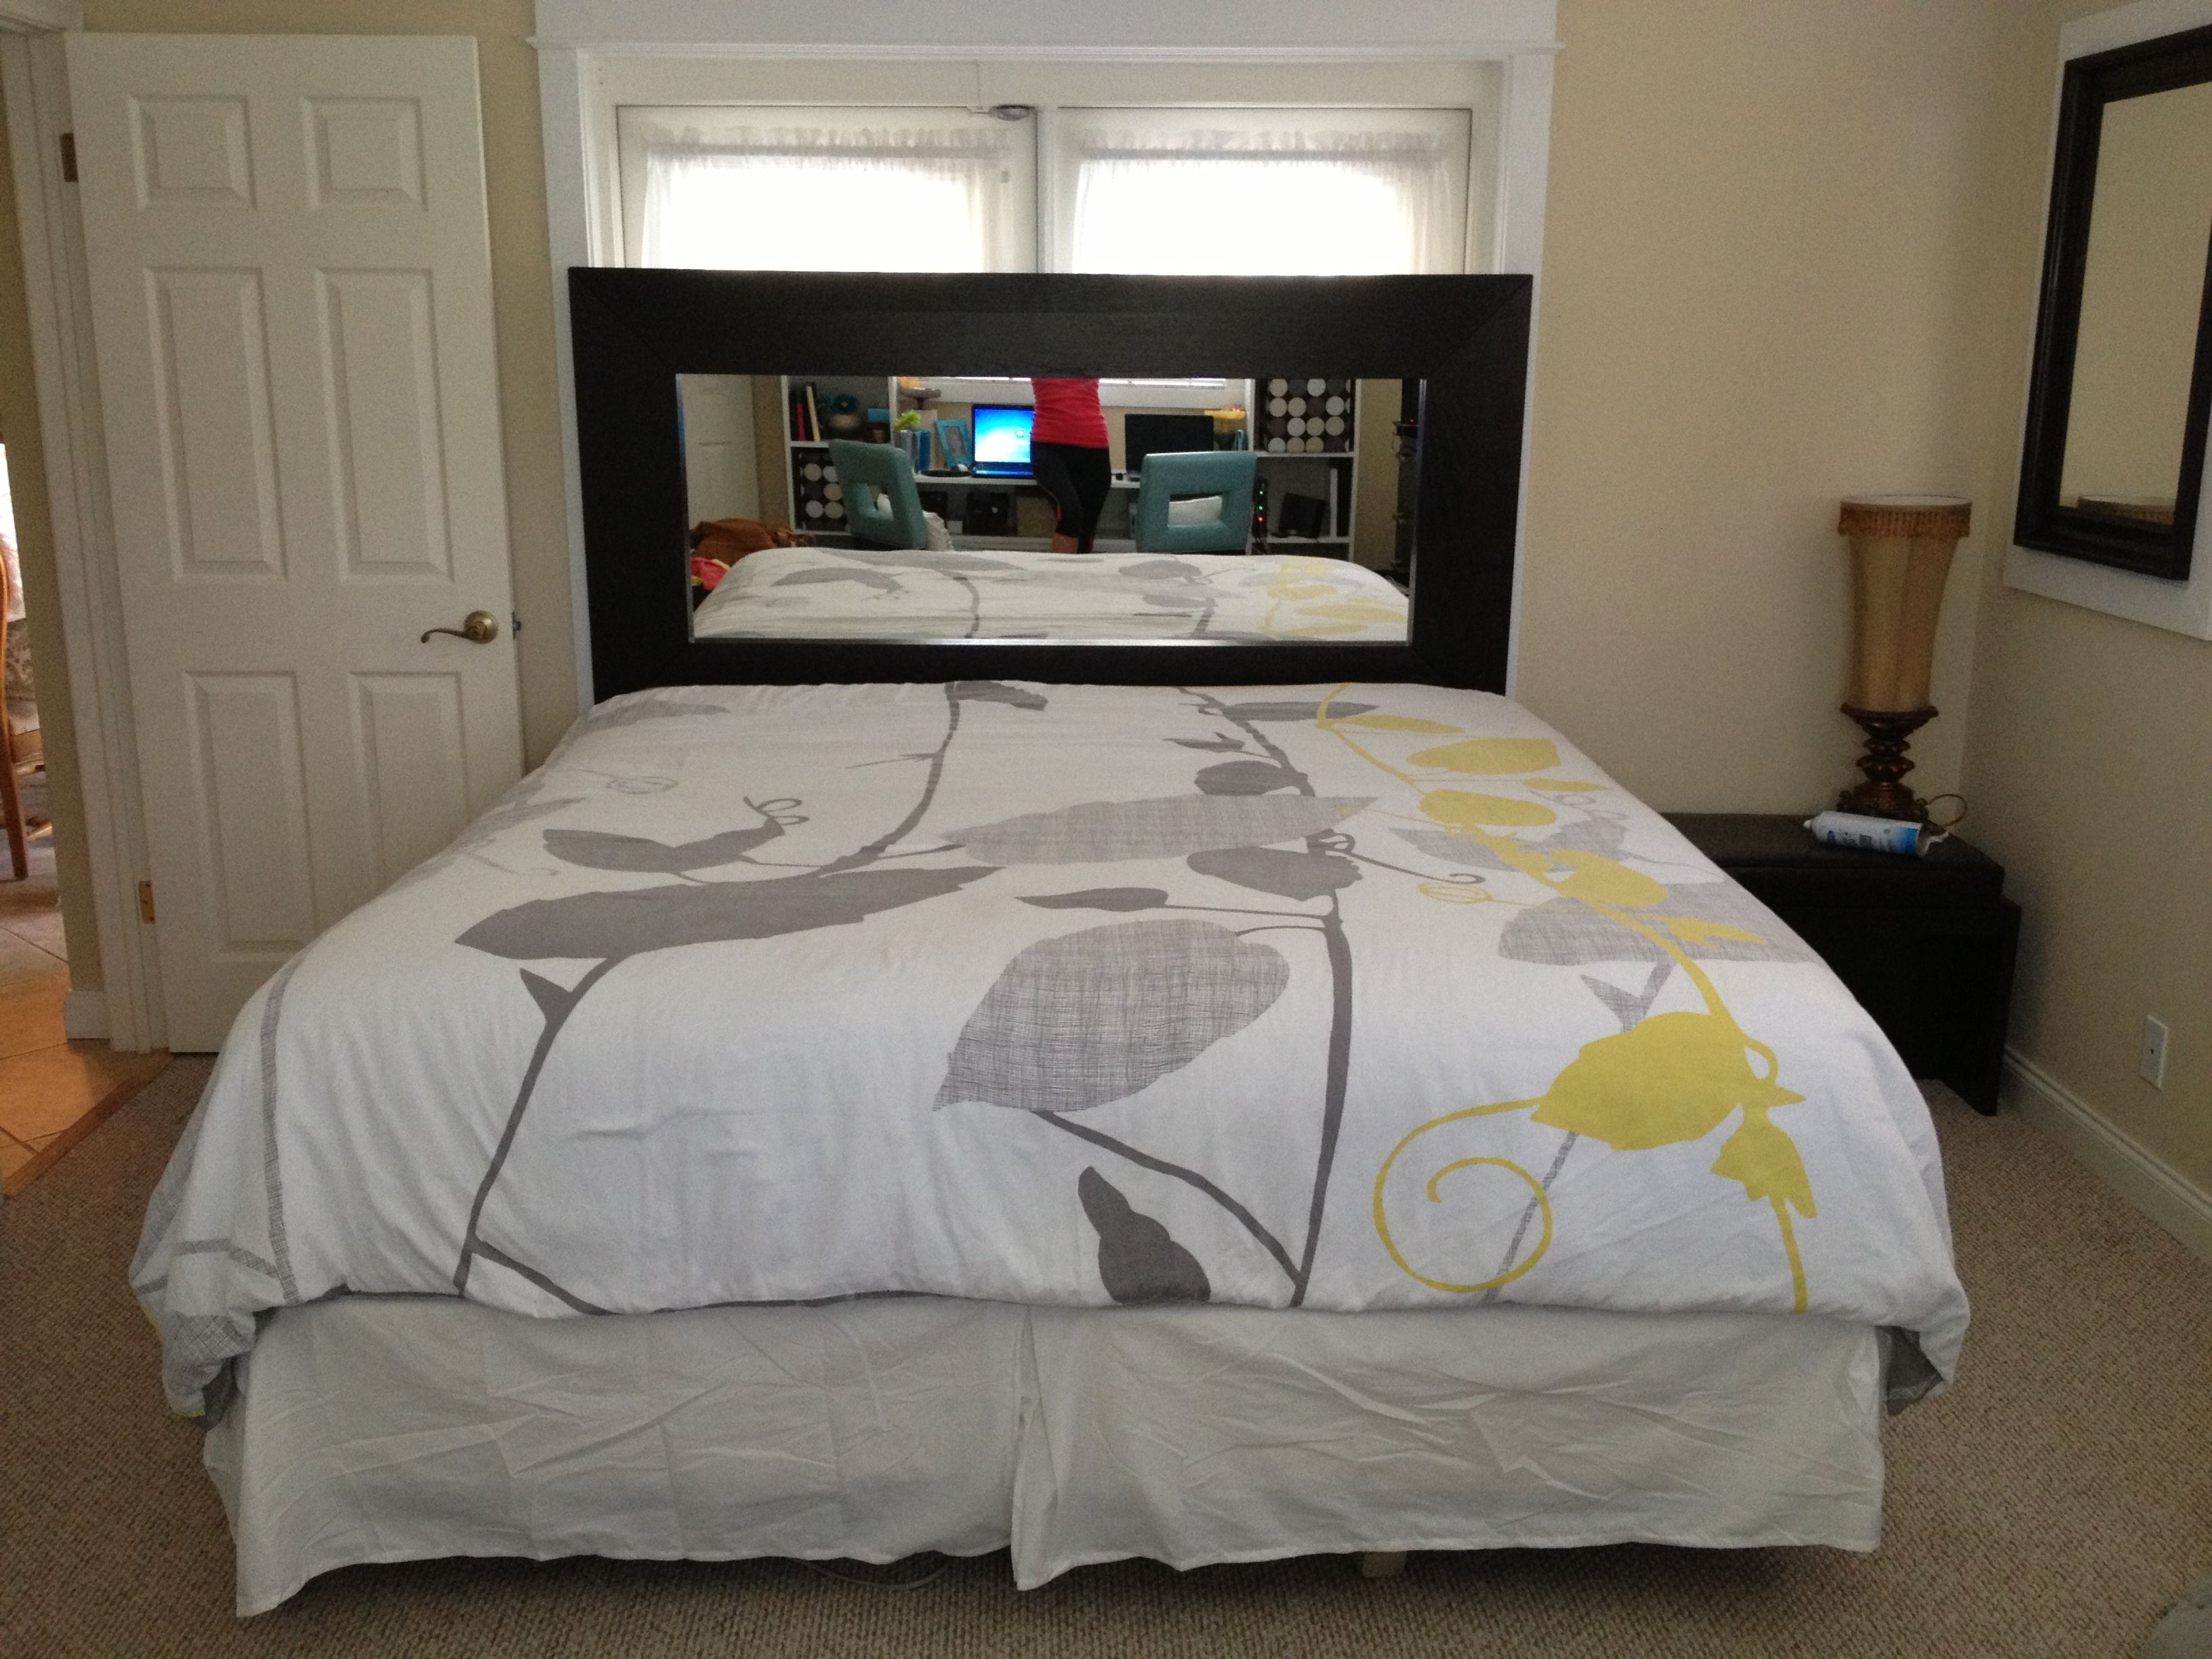 DIY Headboard Using Large Mirror From Ikea For A King Size Bed. Looks Great  Dad, Another Successful Collaboration!